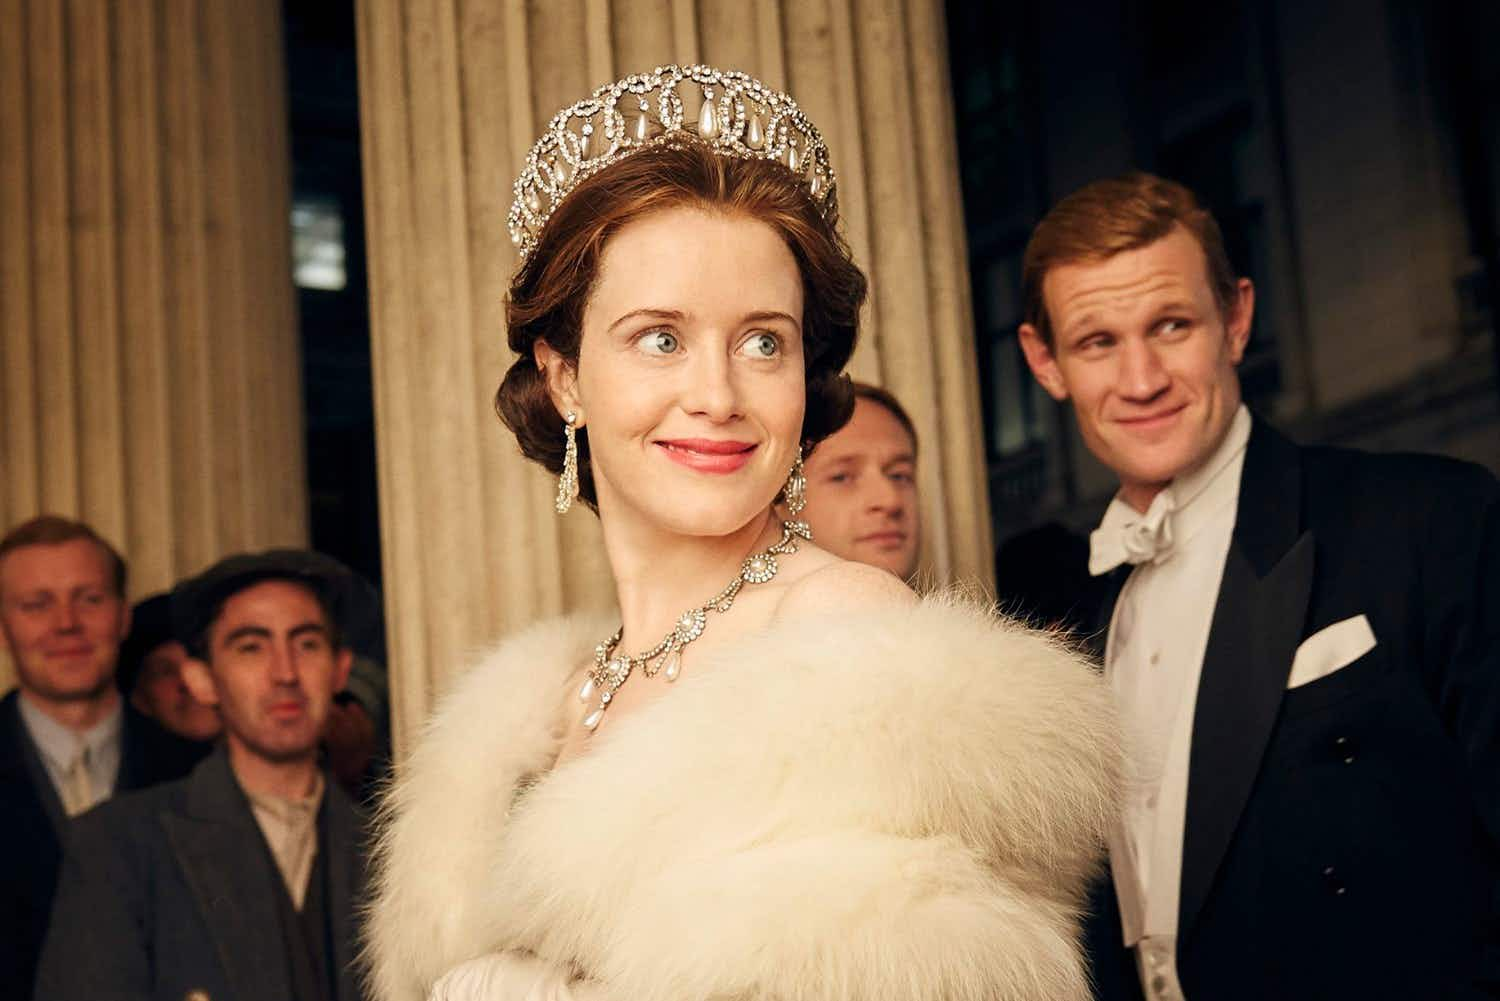 You could have tea with the Queen from Netflix's 'The Crown'